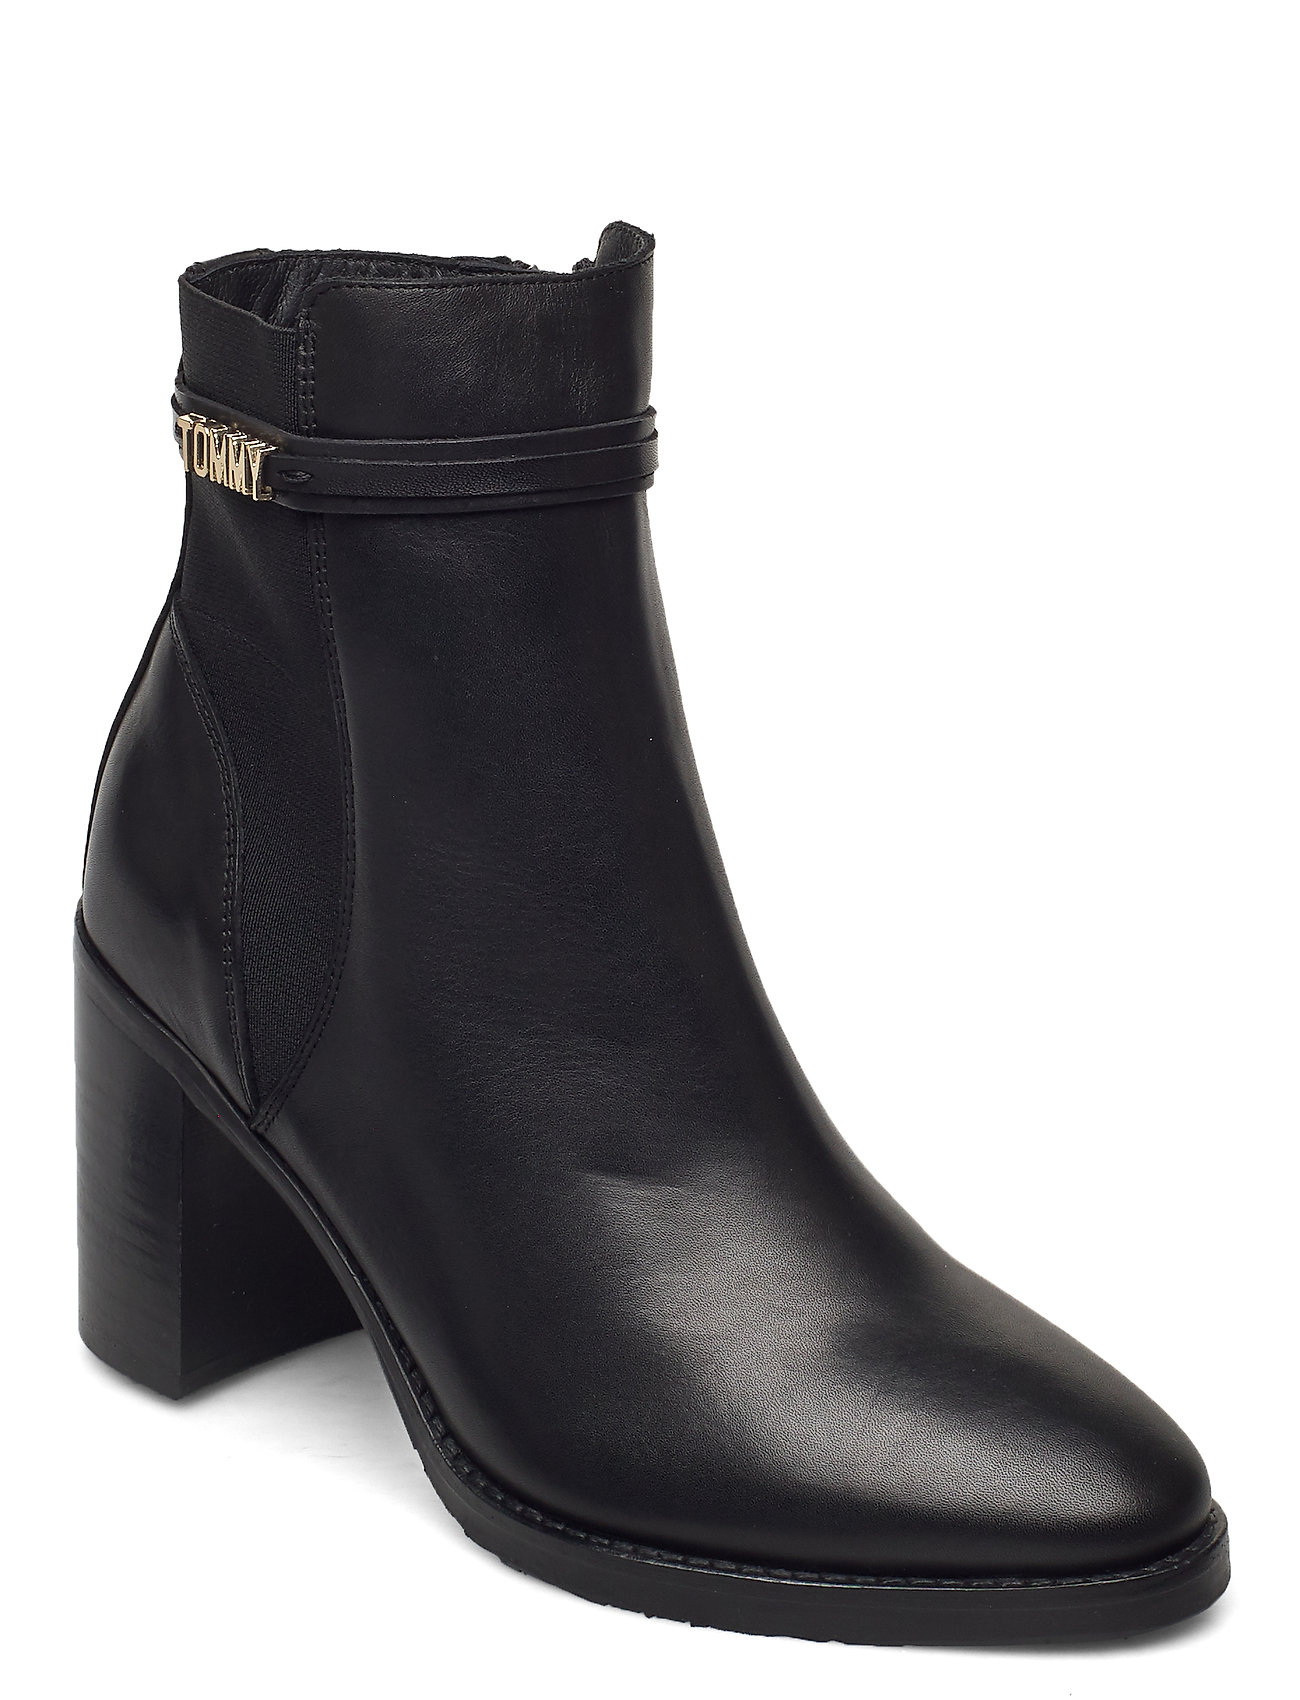 Image of Block Branding High Heel Boot Shoes Boots Ankle Boots Ankle Boot - Heel Sort Tommy Hilfiger (3453533217)